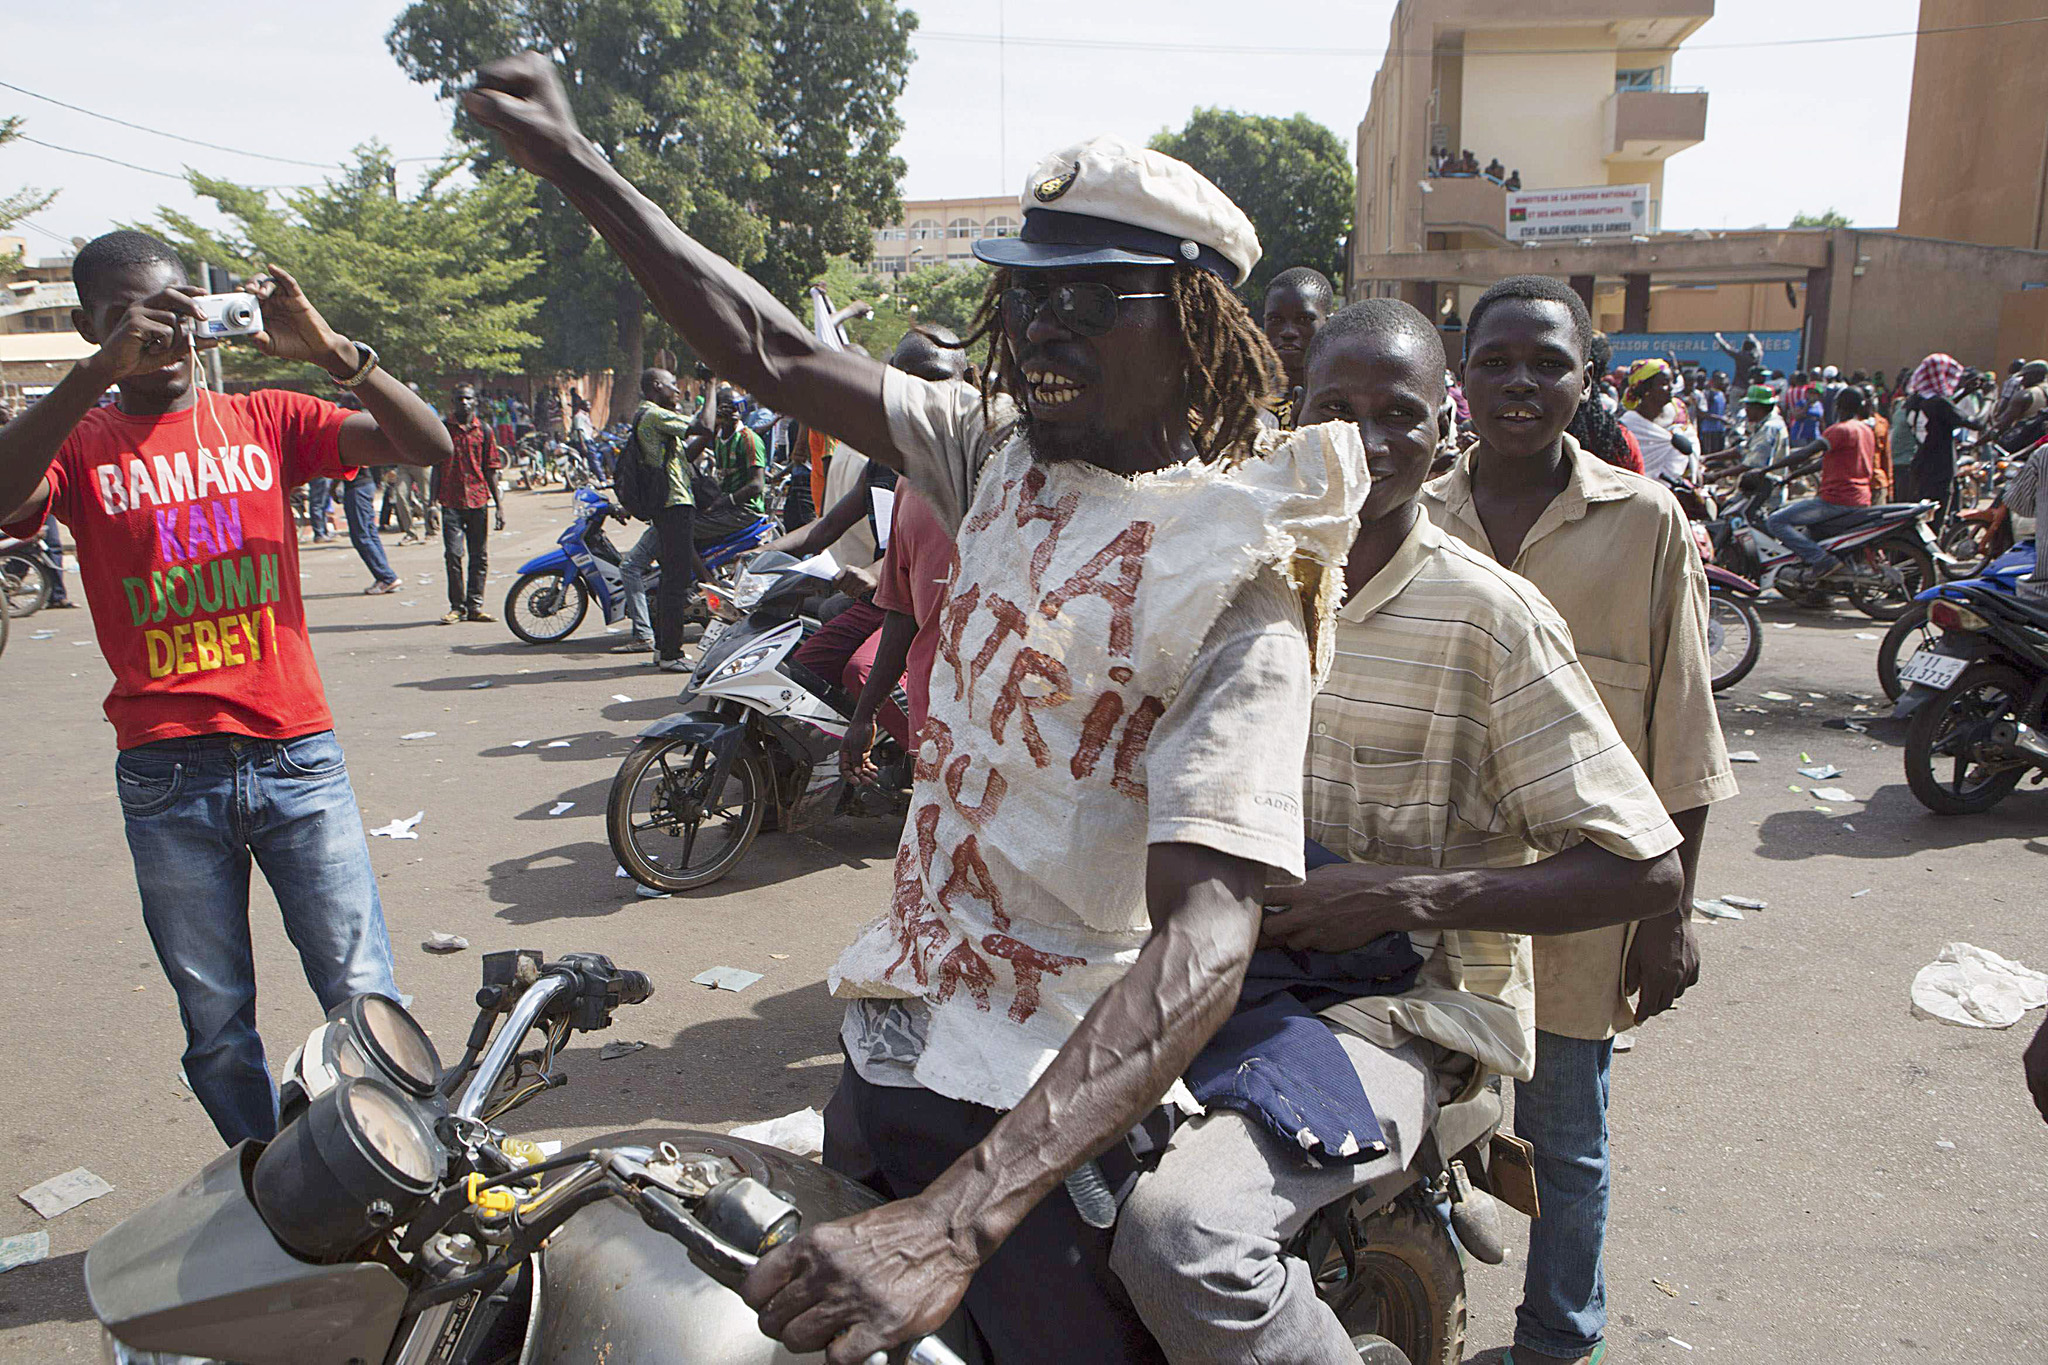 People celebrate the departure of Burkina Faso's President Blaise Compaore in Ouagadougou...People celebrate the departure of Burkina Faso's President Blaise Compaore in Ouagadougou, capital of Burkina Faso, October 31, 2014. General Honore Traore, the head of Burkina Faso's armed forces, took power on Friday after Compaore resigned amid mass demonstrations against an attempt to extend his 27-year rule in the West African country. REUTERS/Joe Penney (BURKINA FASO - Tags: POLITICS CIVIL UNREST)